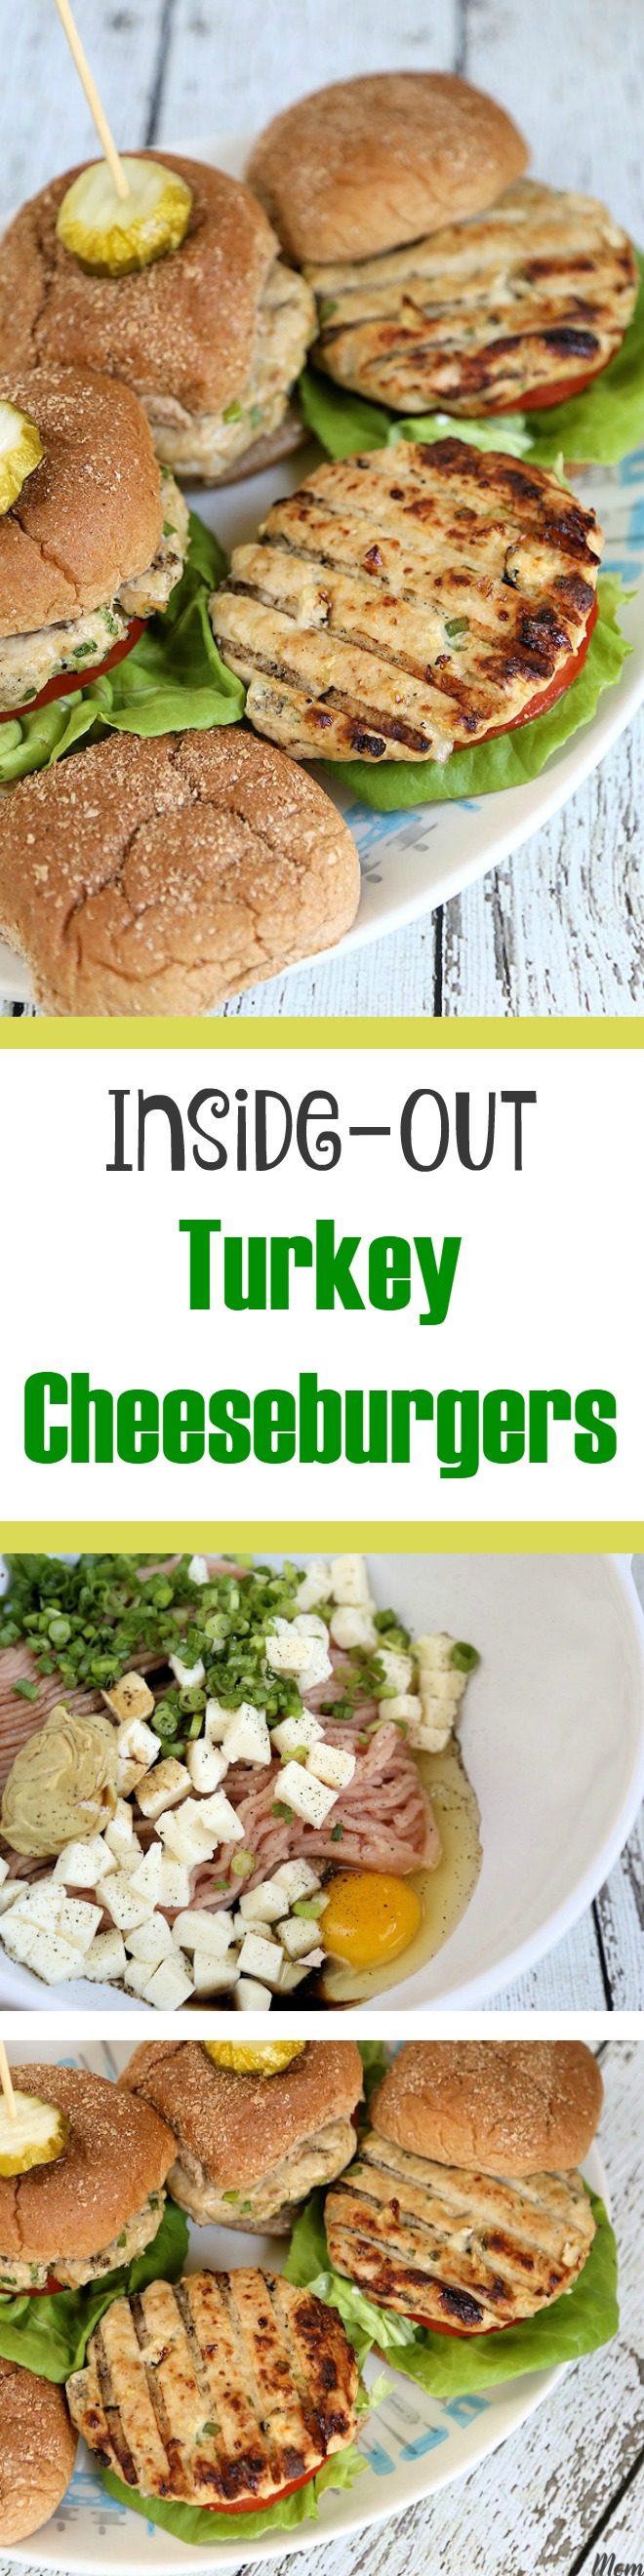 Inside-out Turkey Cheeseburgers Recipe